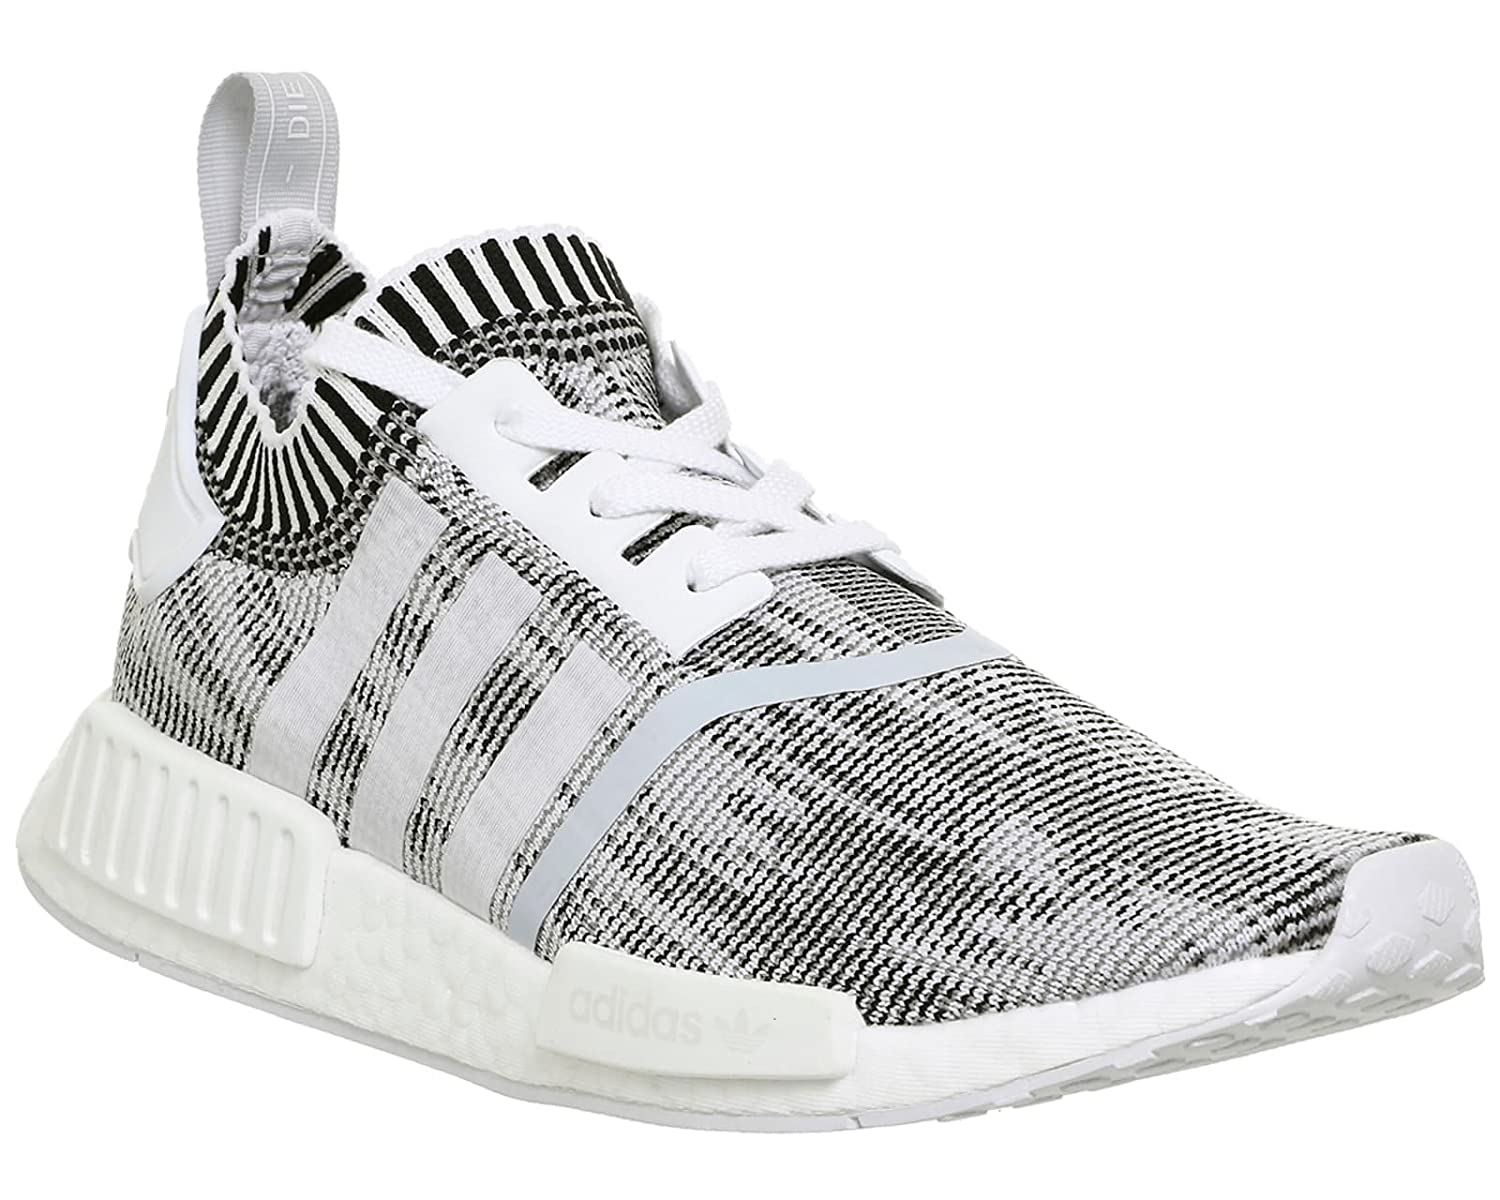 size 40 95ce0 29b43 adidas NMD R1 PK 'Oreo' - BY1911 - Size 10